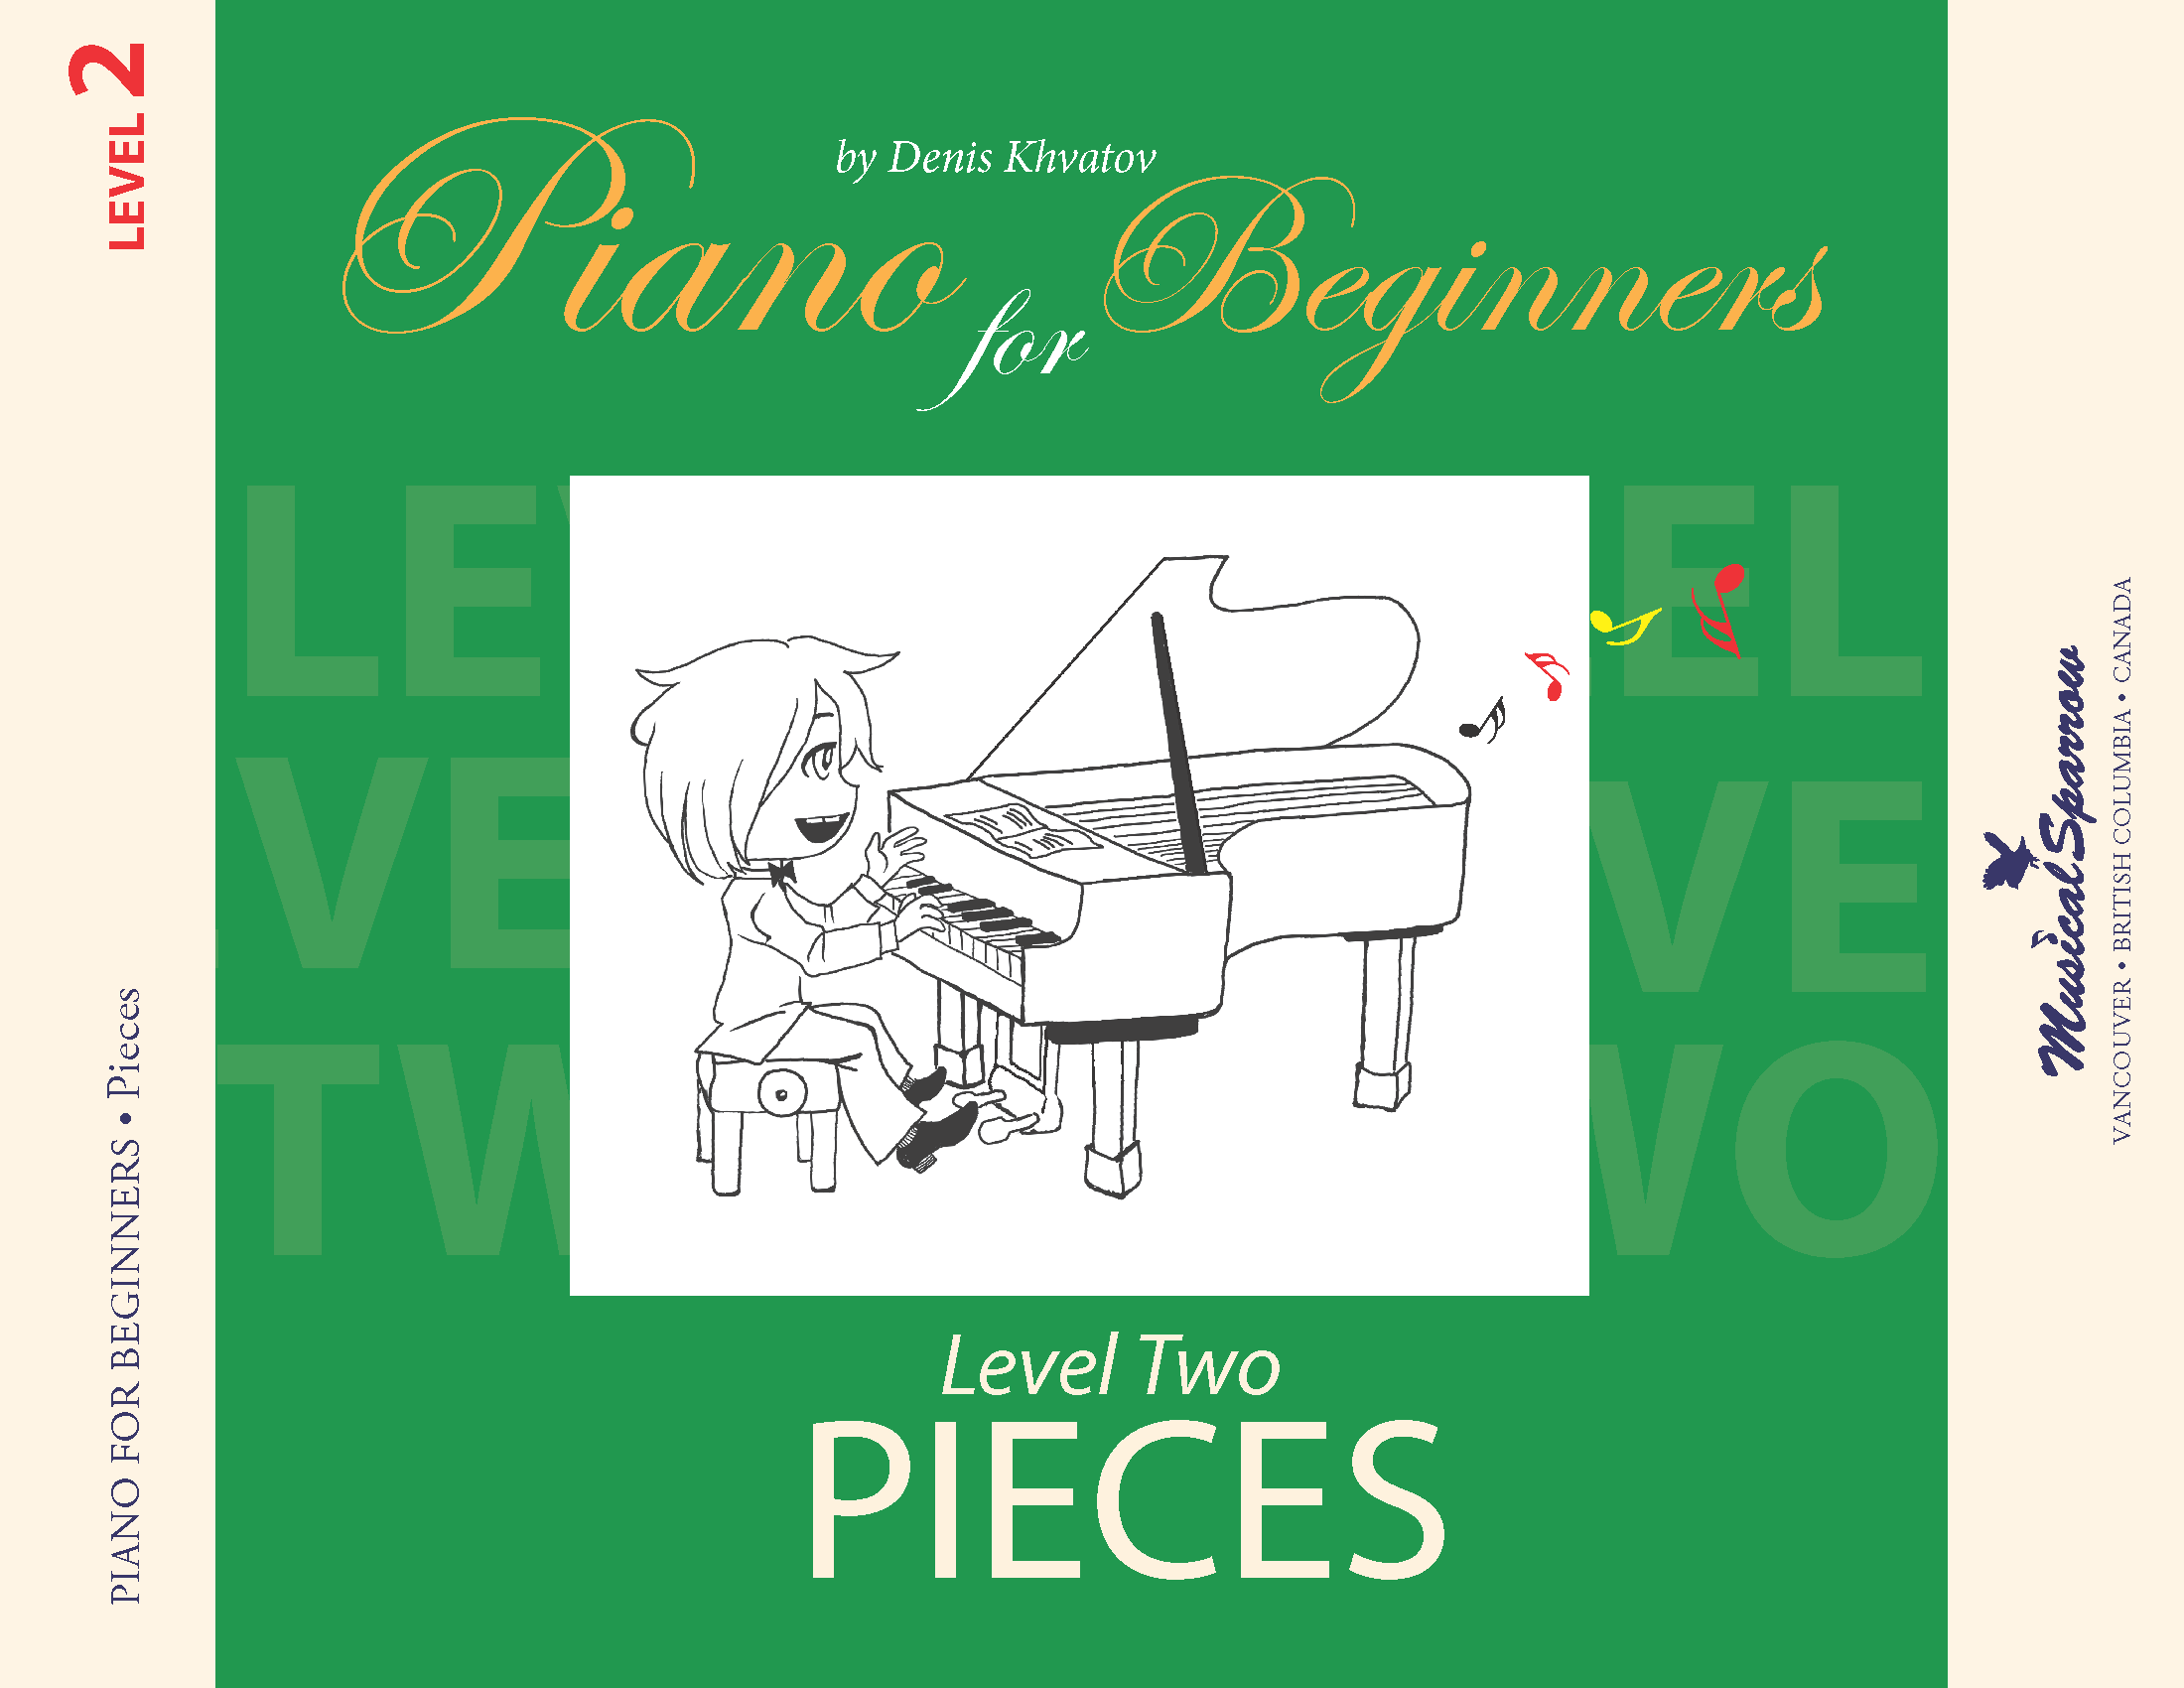 Piano for Beginners. Level 2